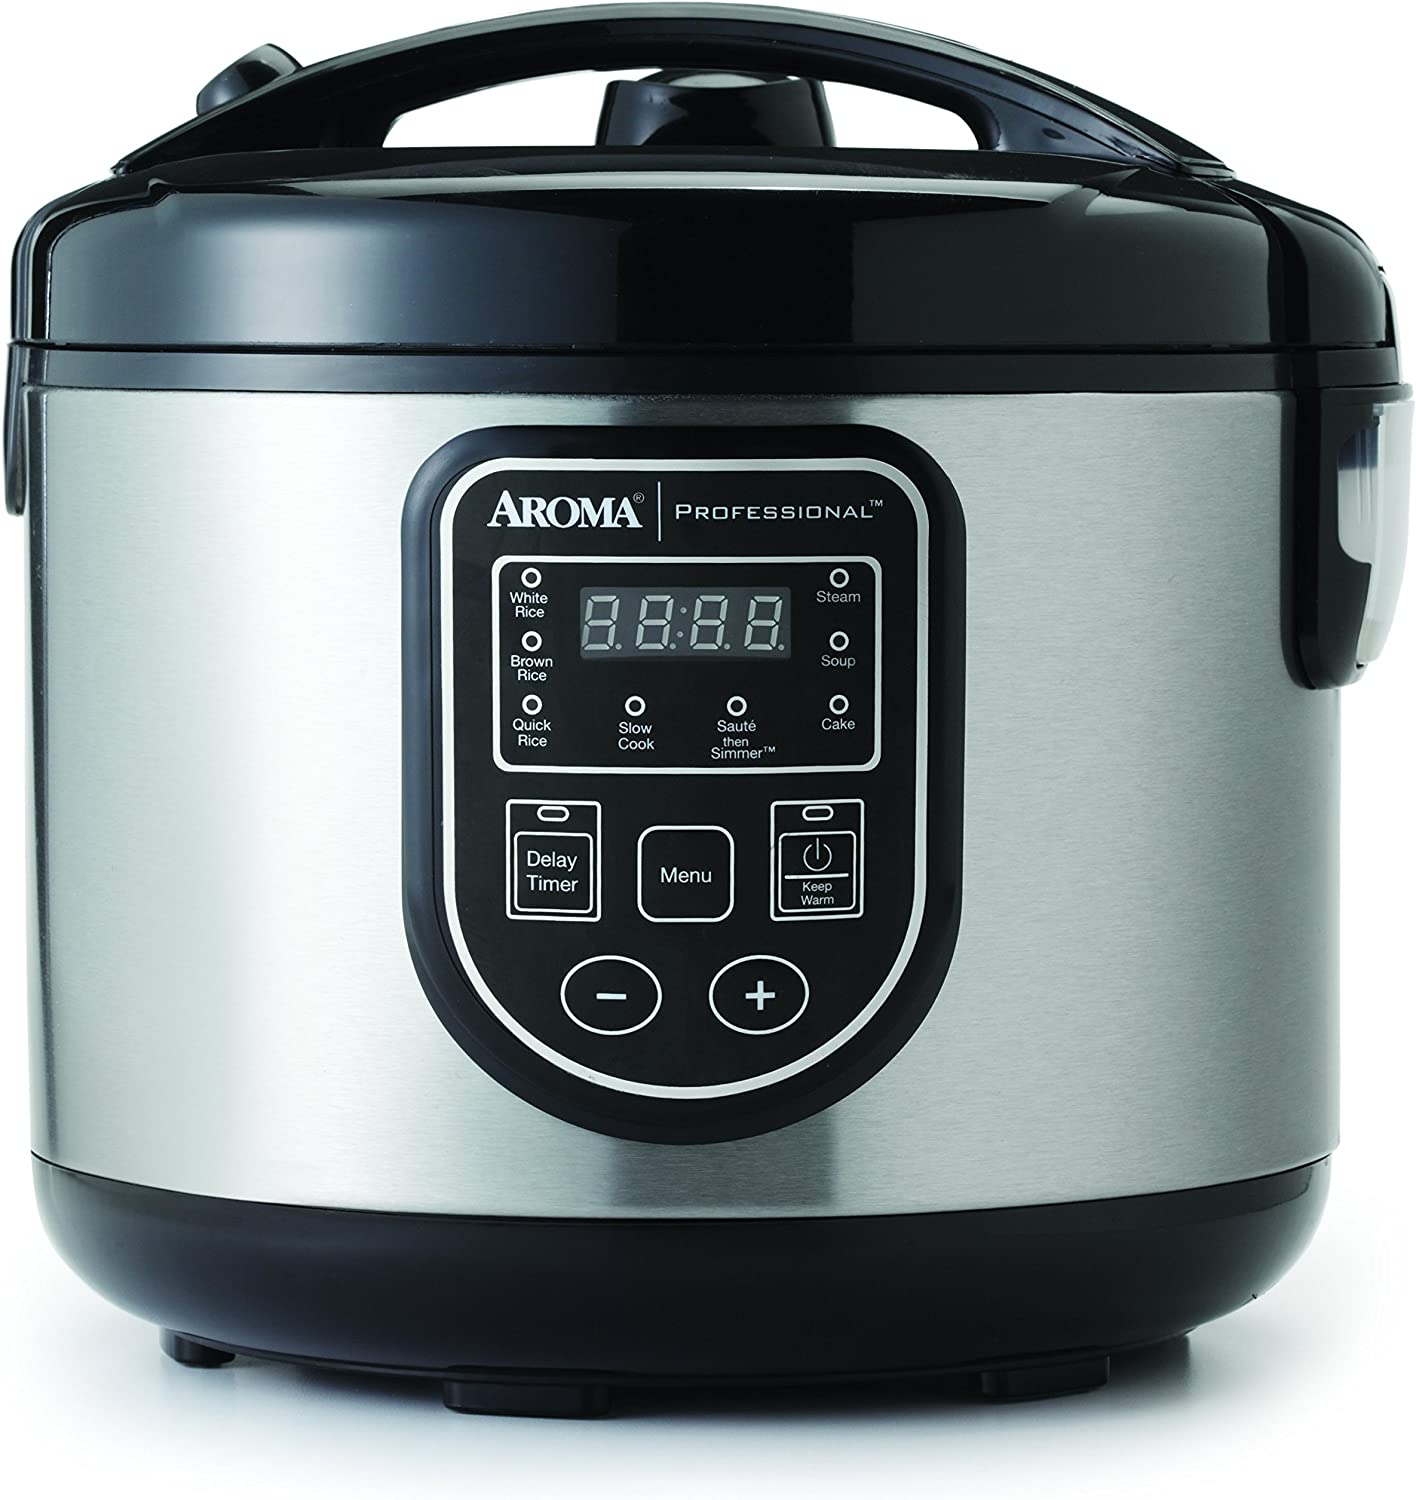 Aroma Housewares ARC-980SB Professional 20-cup (Cooked) Digital Rice Cooker,Multi Cooker